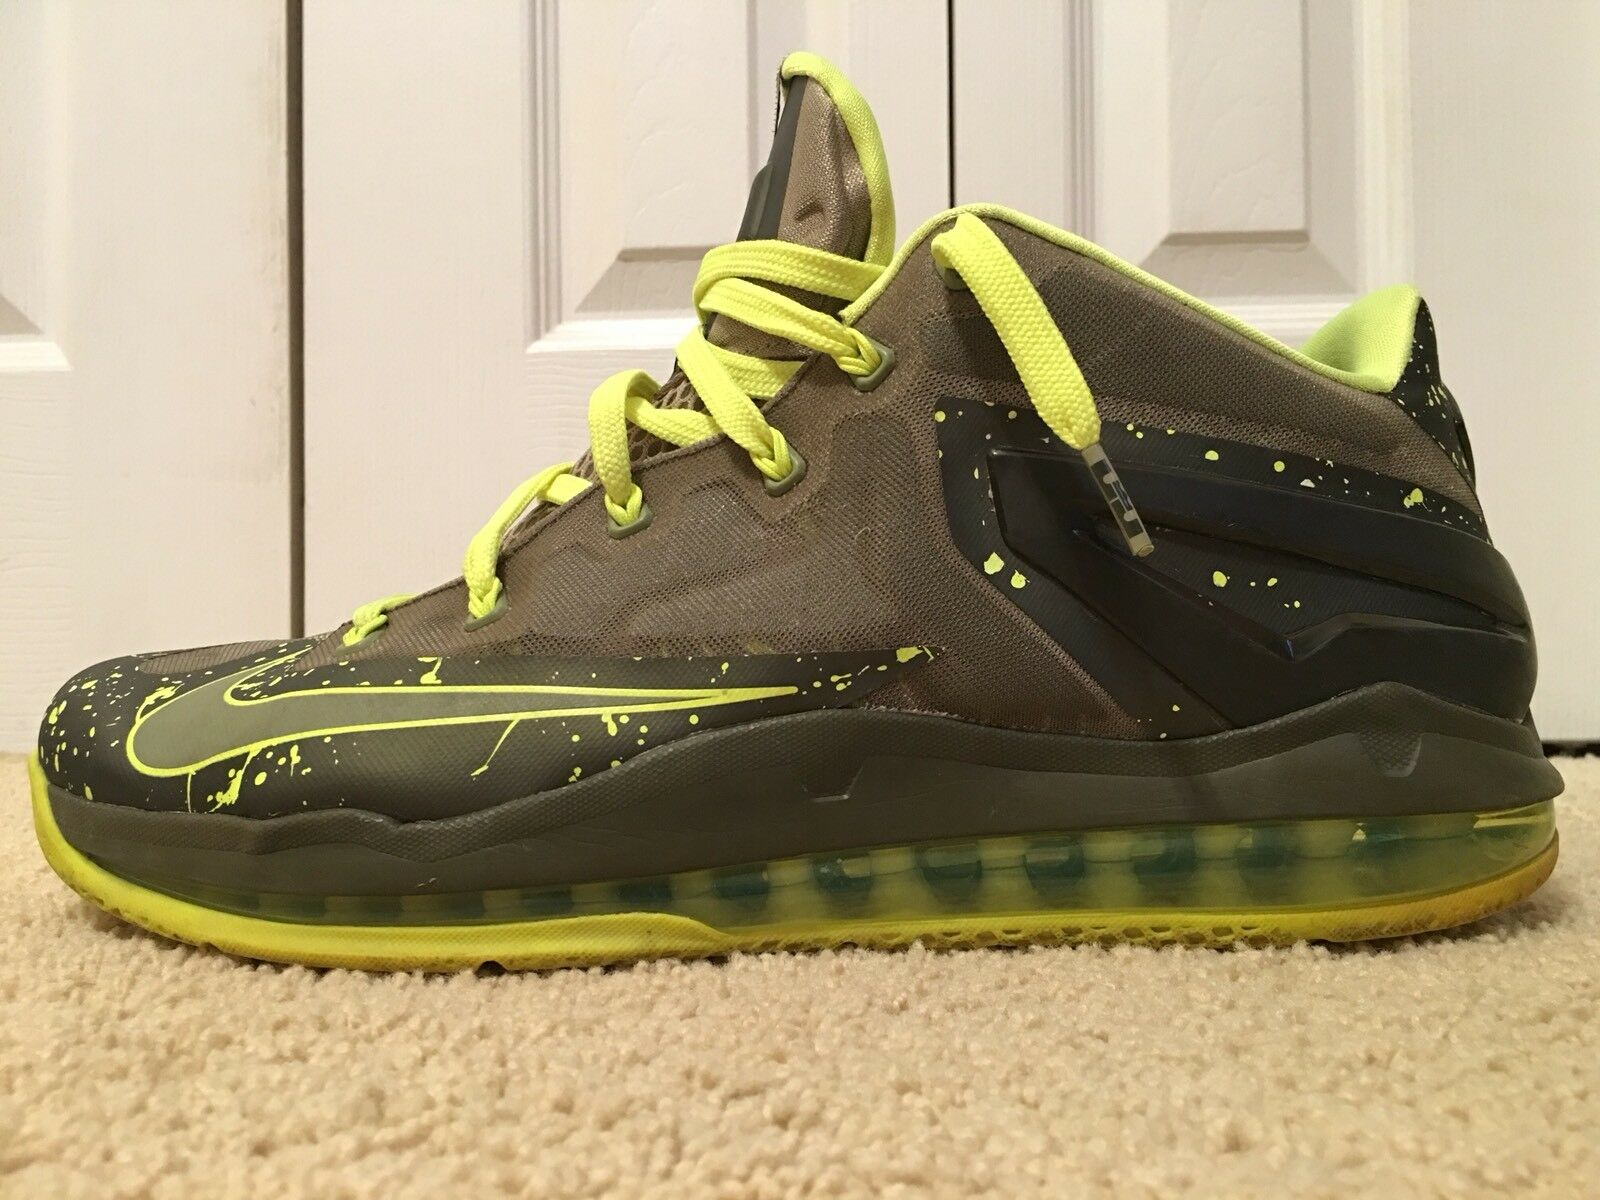 Special limited time Nike Lebron 11 XI Low Dunkman Air Max, Volt Green, 642849-2018 Men's Comfortable